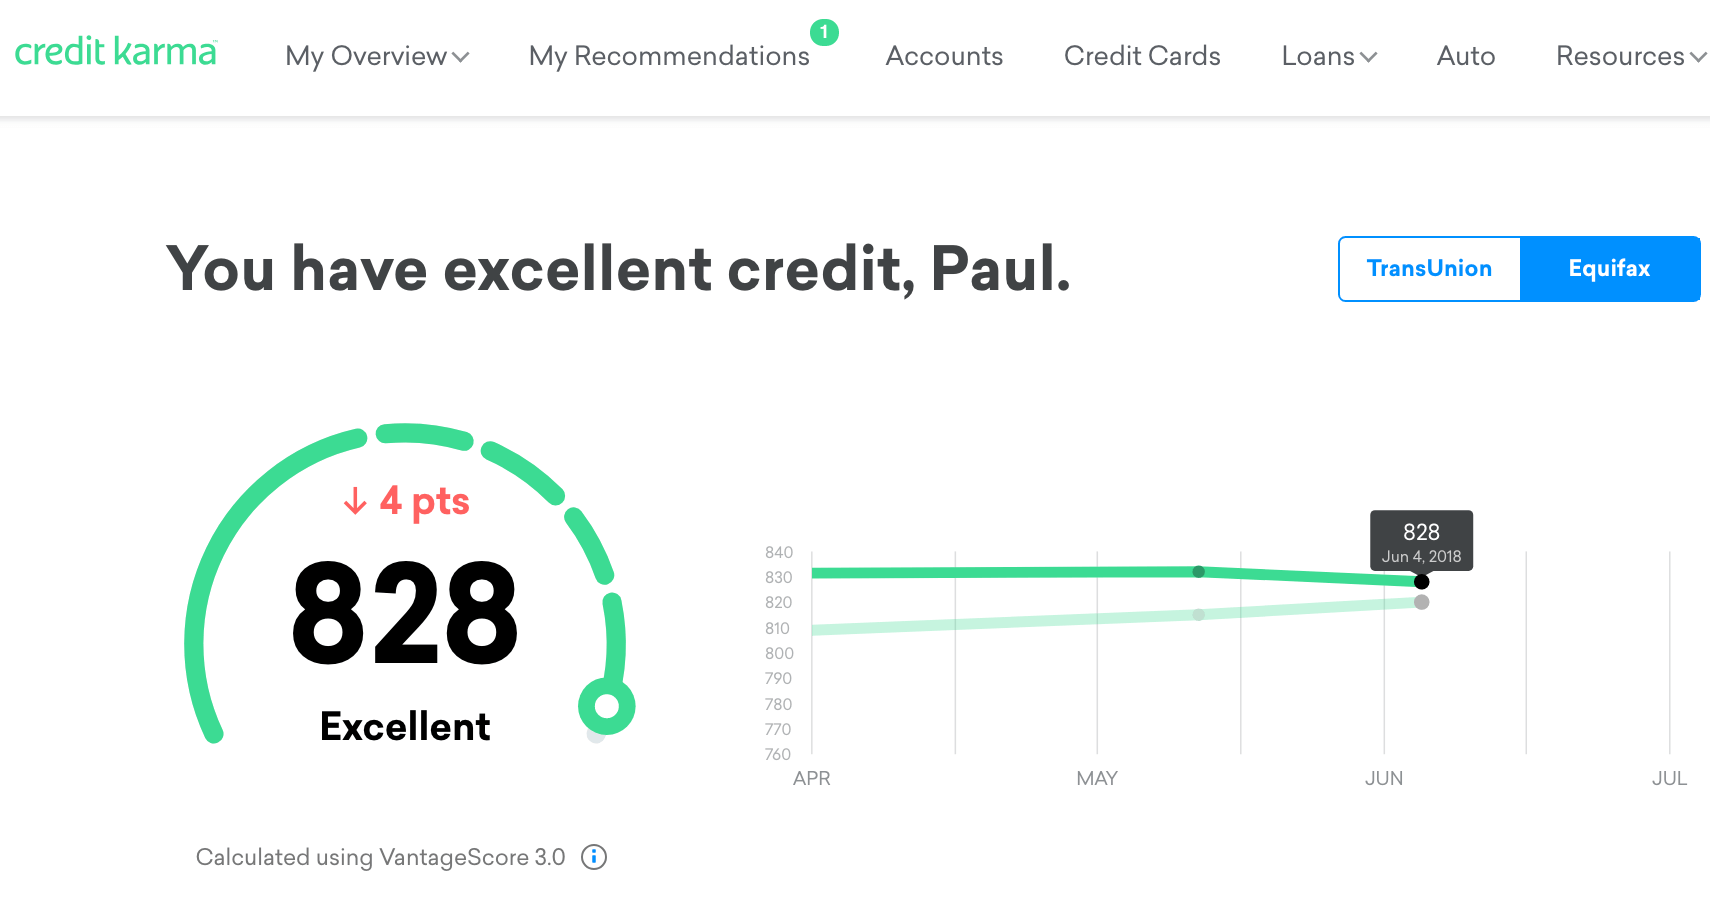 800 phone number for credit karma